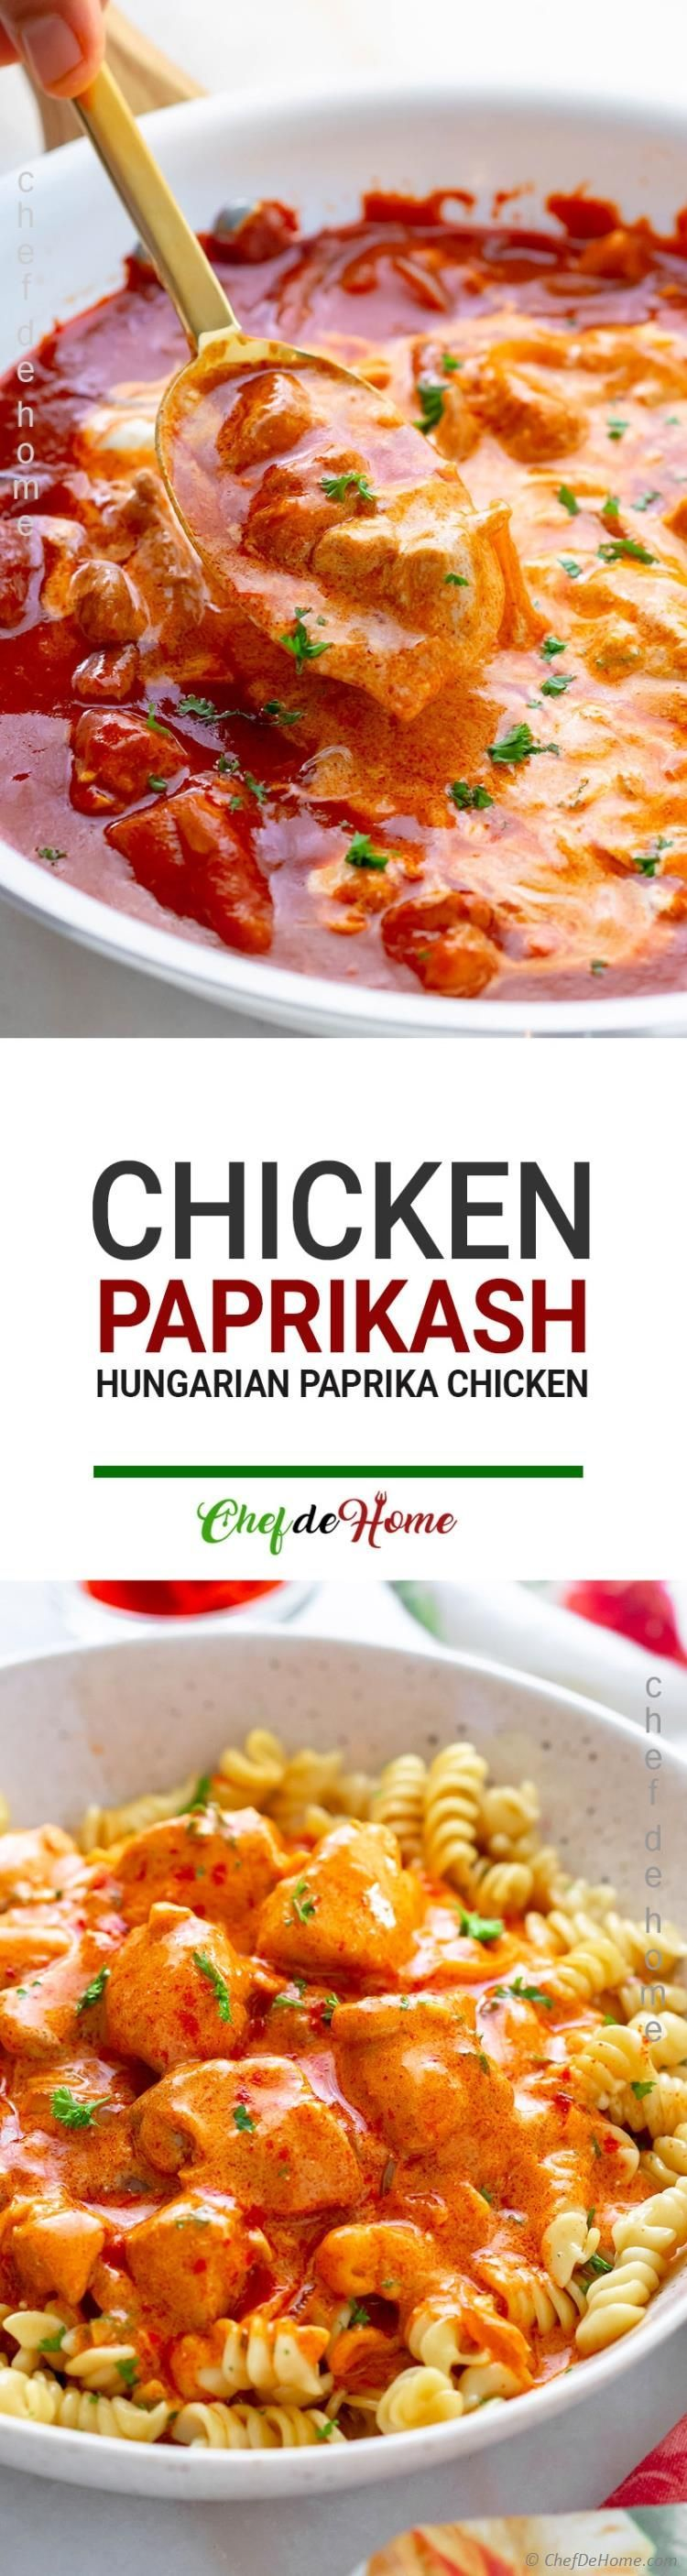 Chicken Paprikash A Hungarian Chicken Dish With Chicken Cooked In Creamy Onion Sour Cream And Paprika Sauce Chicken Paprikash Chicken Dishes Chicken Dinner